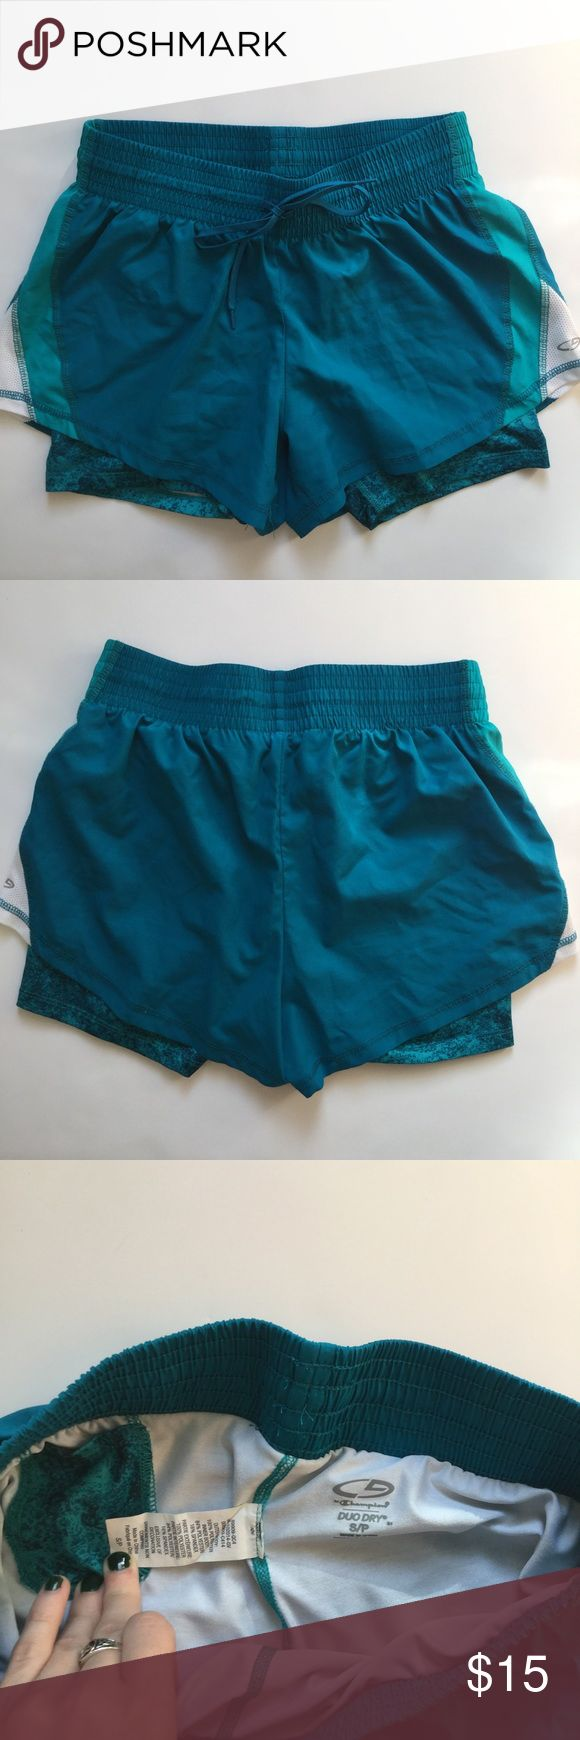 Champion Duo Dry Shorts Size small, perfect condition!  Teal, turquoise, and white. 2 layers--bottom is tighter spandex, top is lighter. Both layers are breathable!  Small pocket in the back!  Honestly, I SWEAR BY THESE SHORTS!  For anyone who wants a more secure feel without the restriction, these are the shorts for you! Champion Shorts